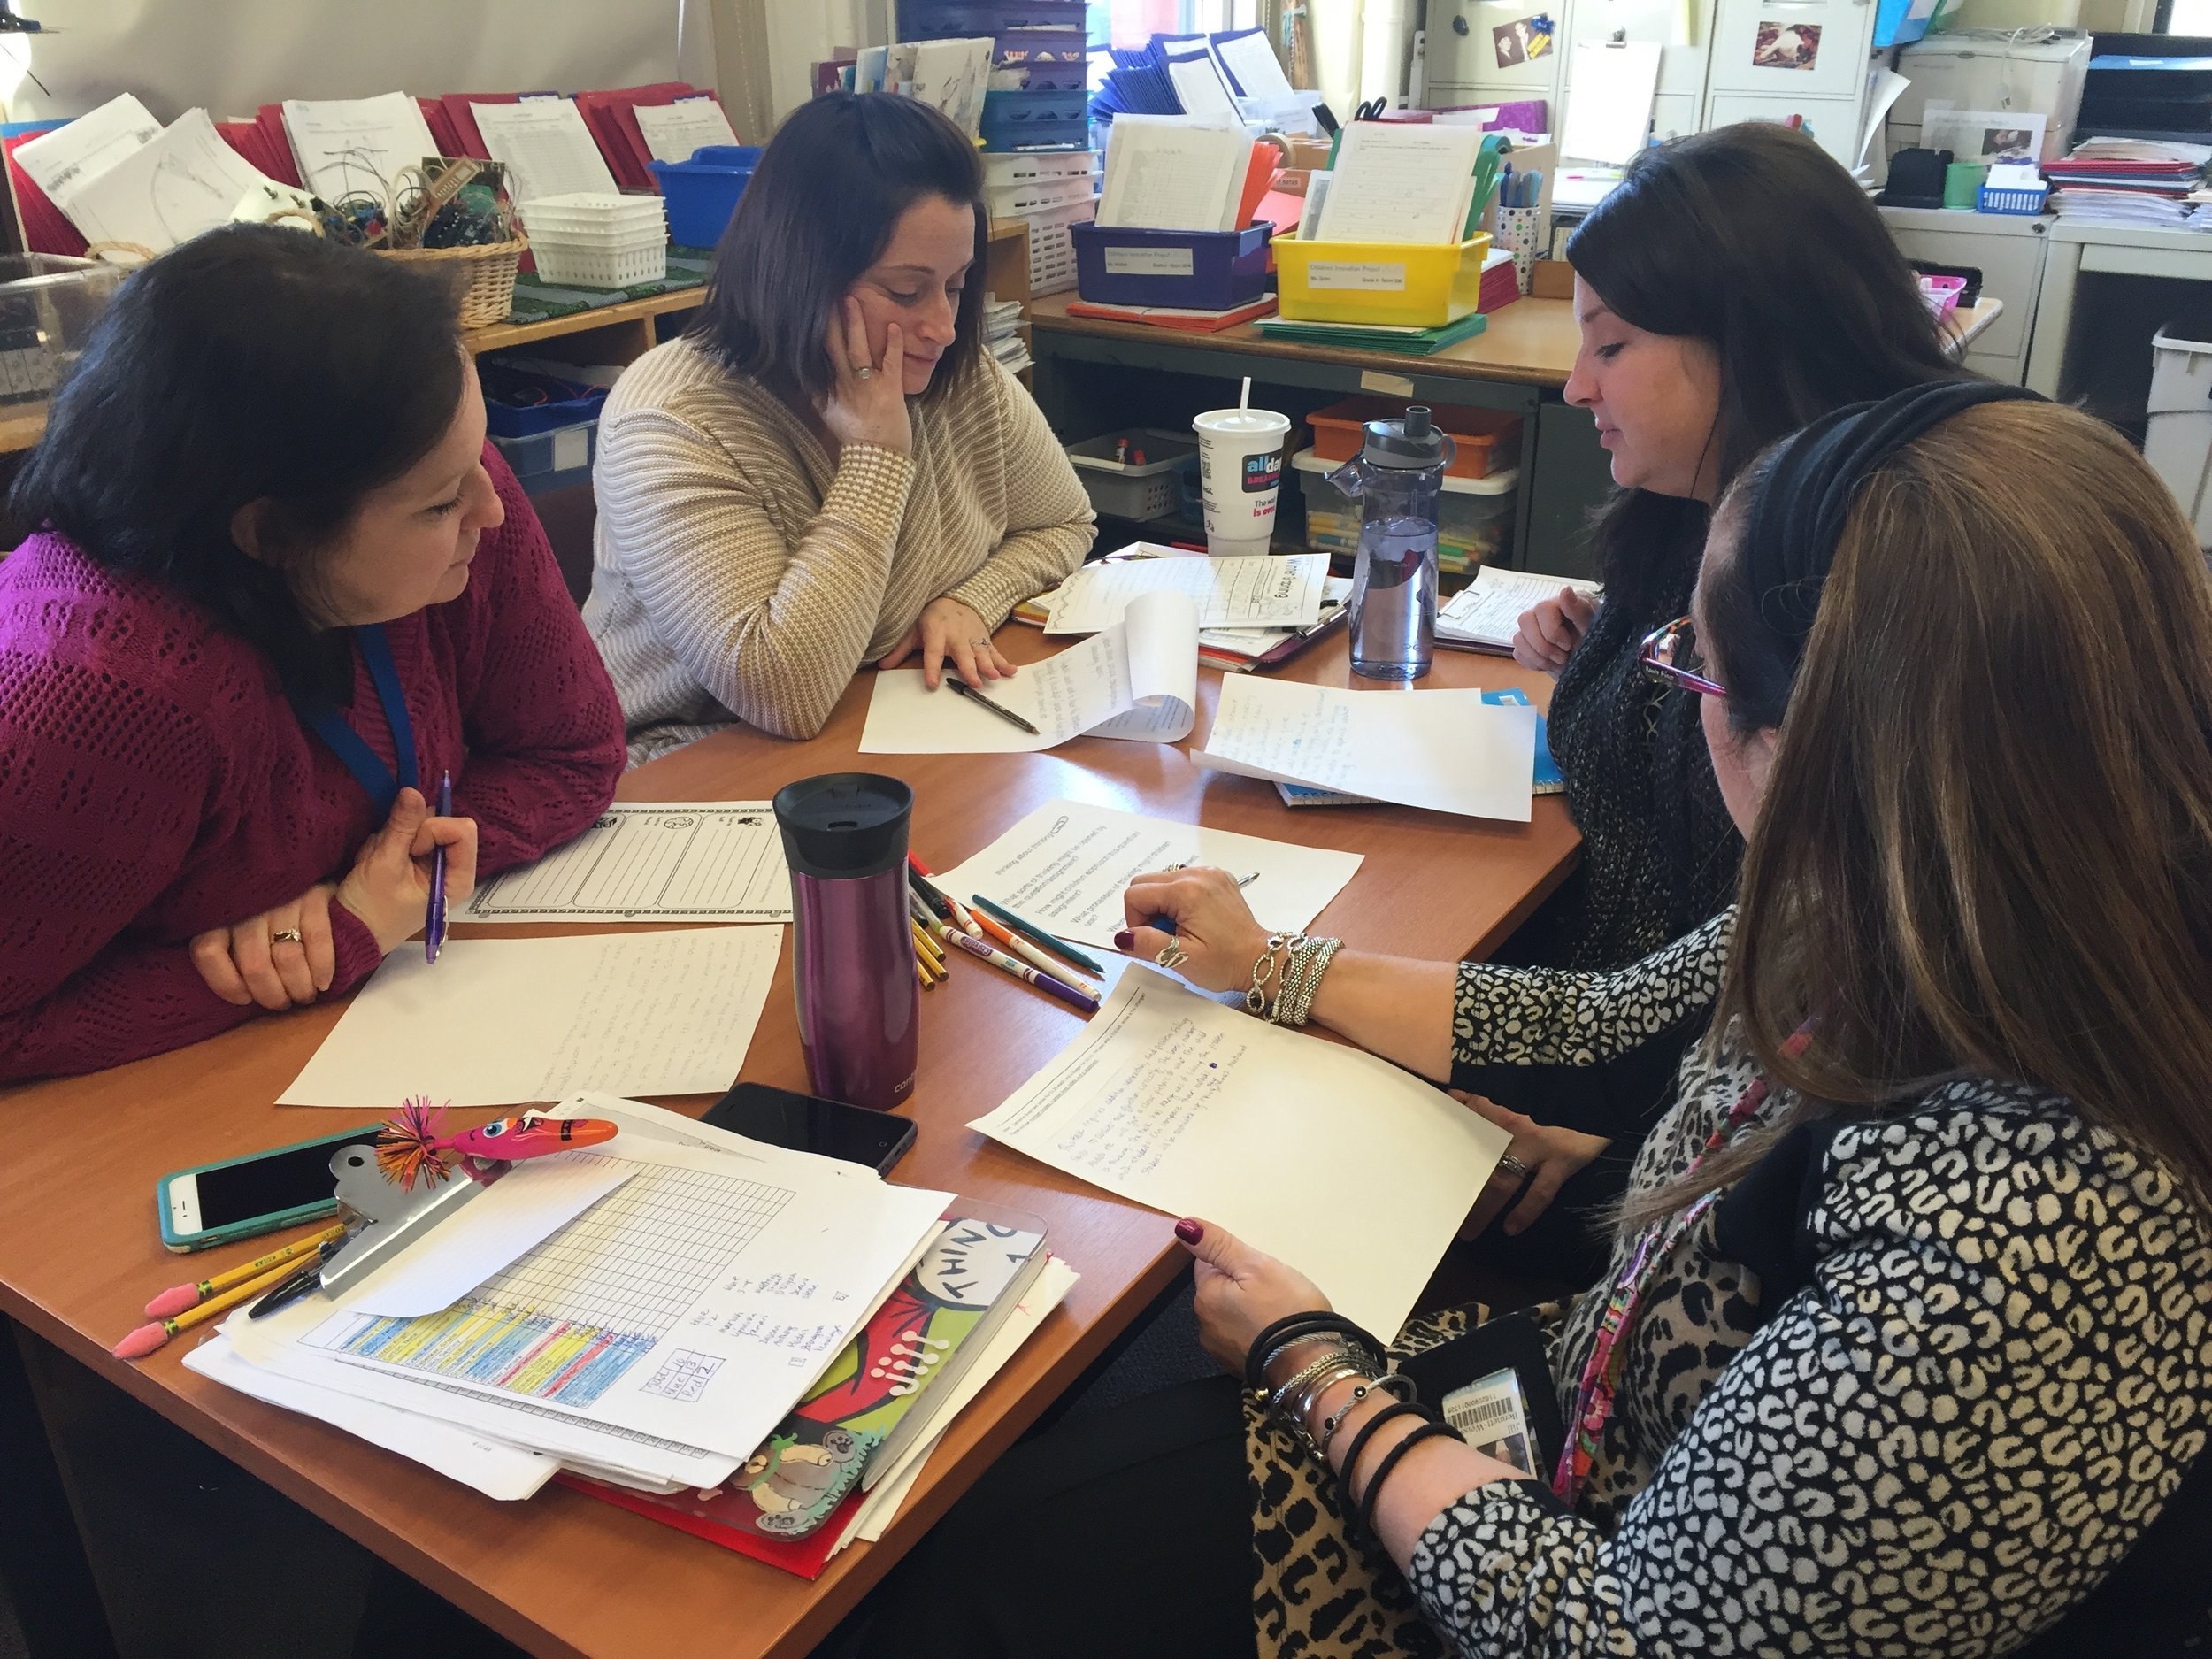 notice and describe student understandings and plan next teaching steps -